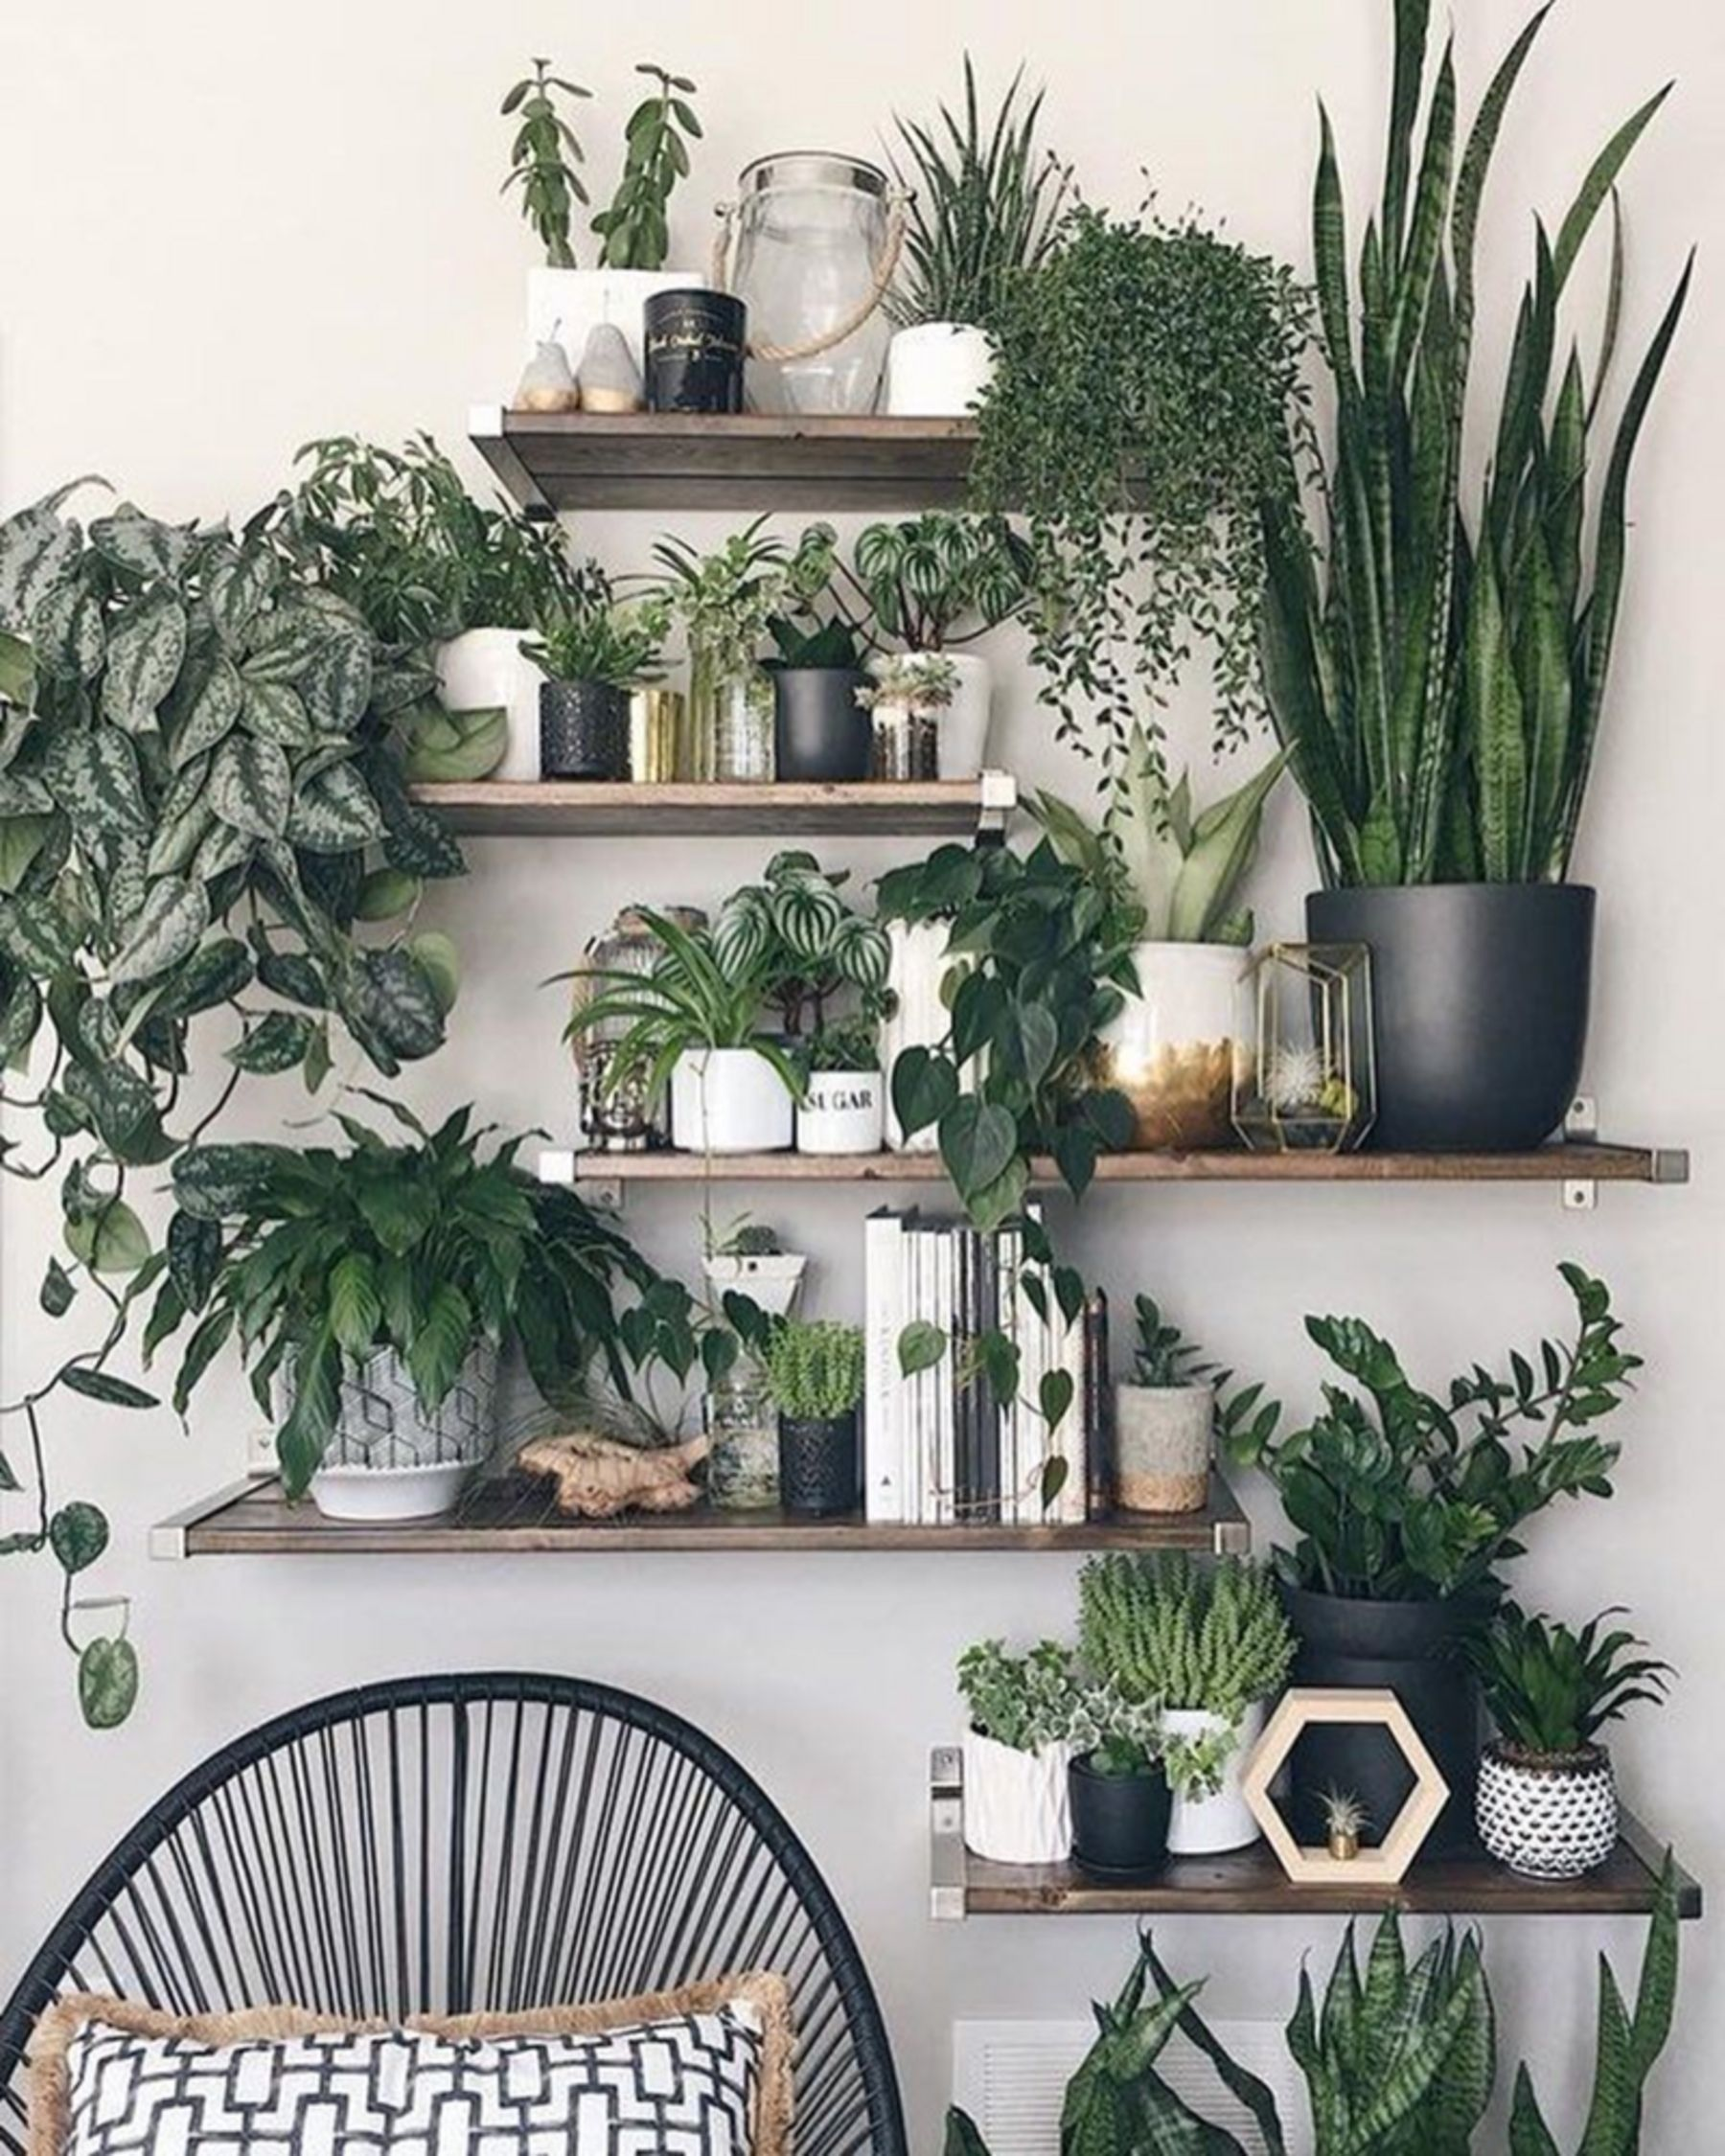 Top 10 Cheap Vertical Wall Planter Pots Ideas To Make Your Home Interior Healthy Moolton Plant Decor Indoor Living Room Plants Bedroom Plants